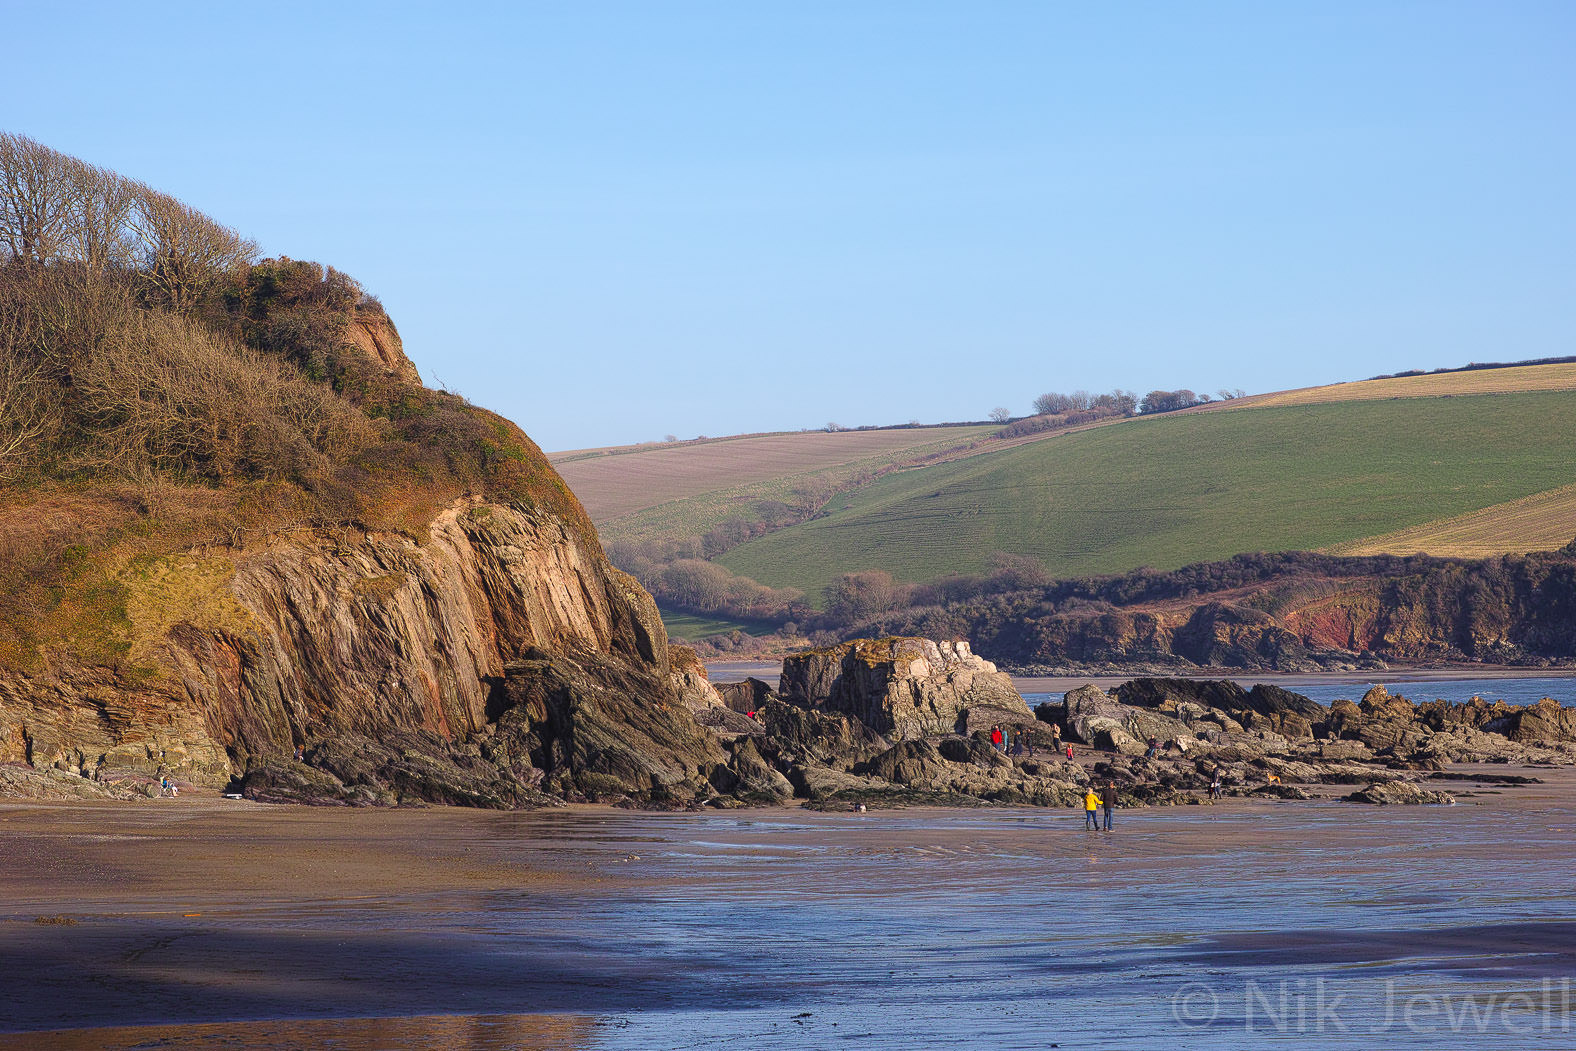 Meadowsfoot Beach, Owen's Hill and Owen's Point at the mouth of the Erme Estuary in the Soutrh Hams of Devon